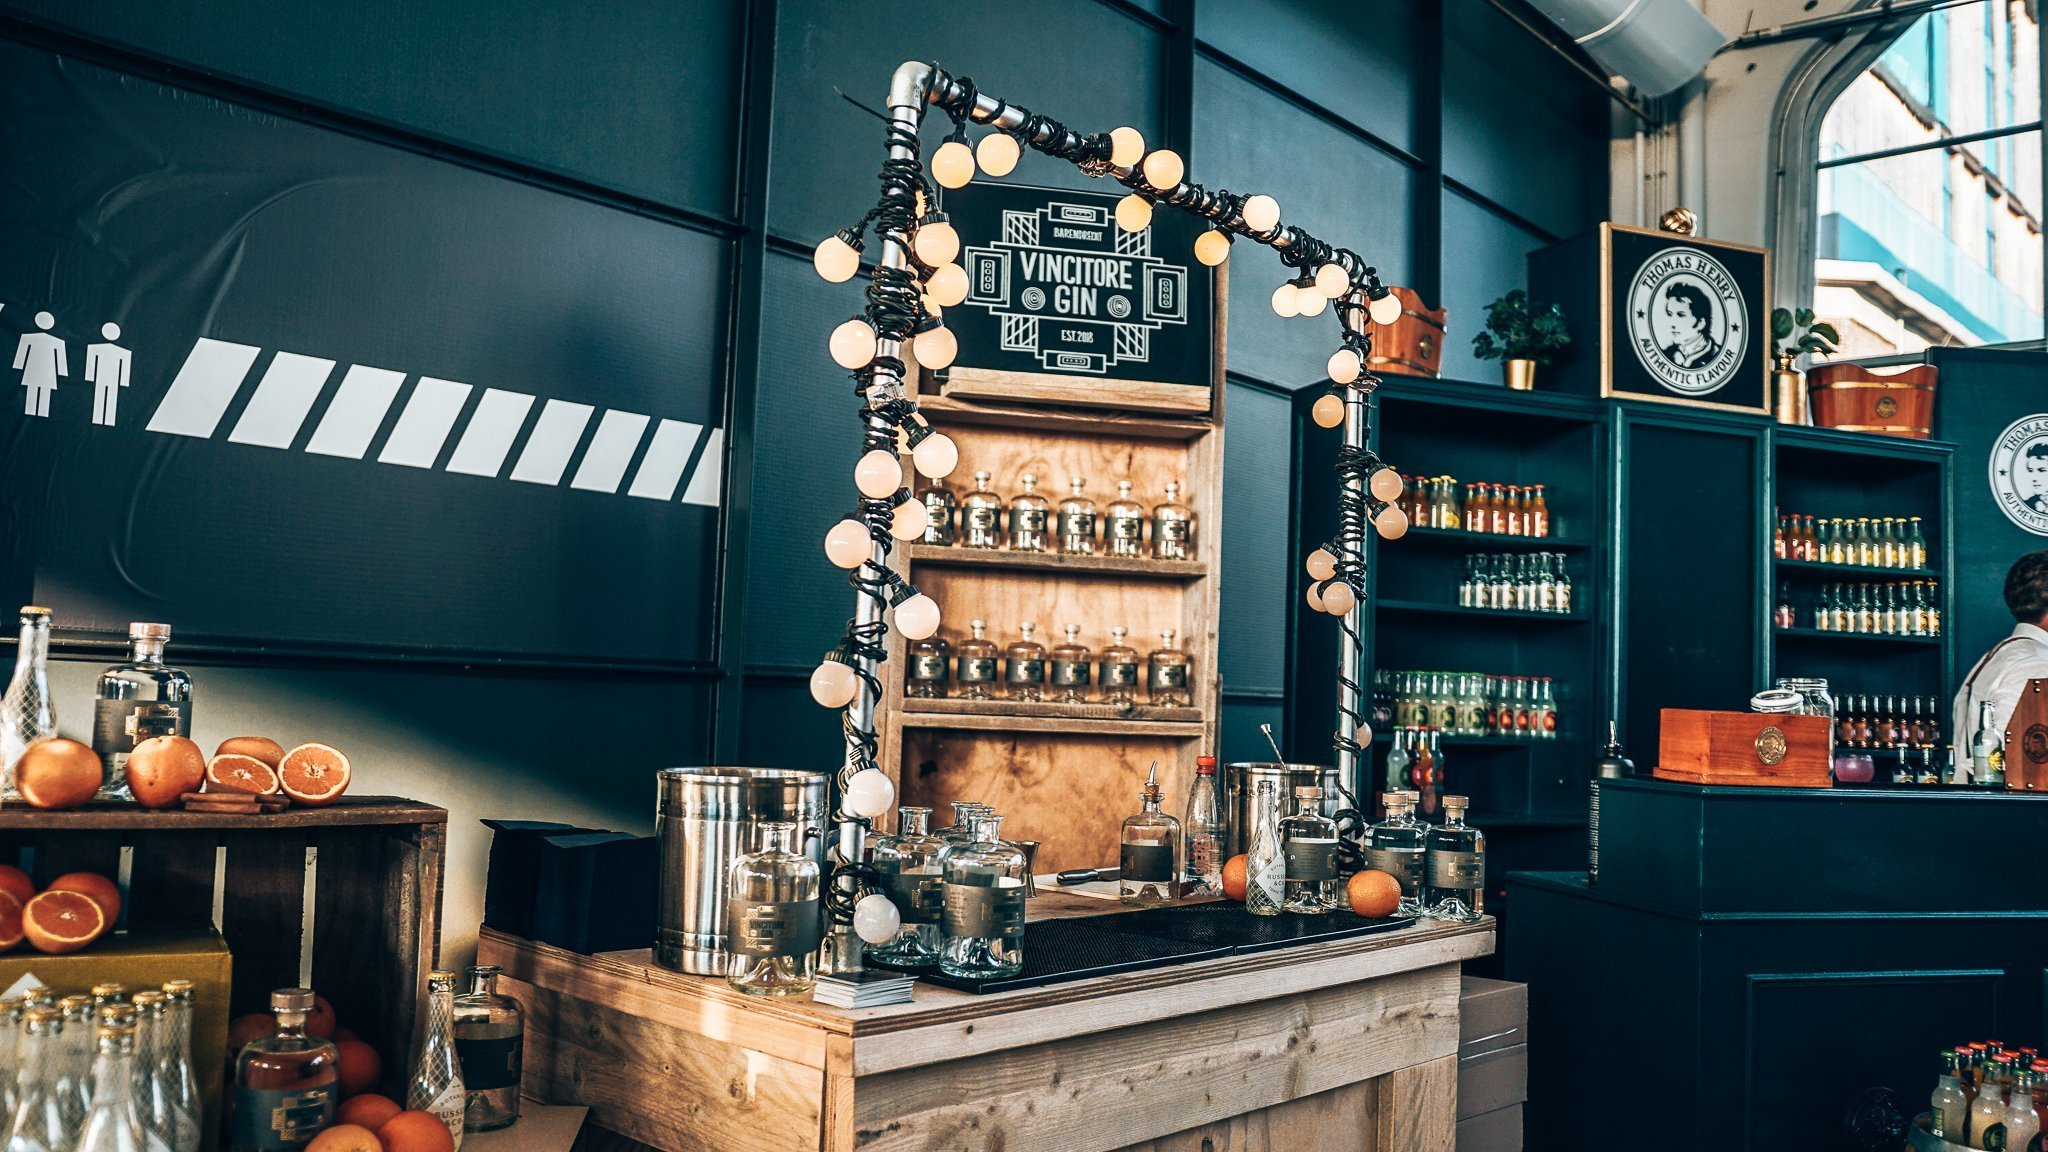 Vincitore gin, Ginfestival Rotterdam, Alles over gin.